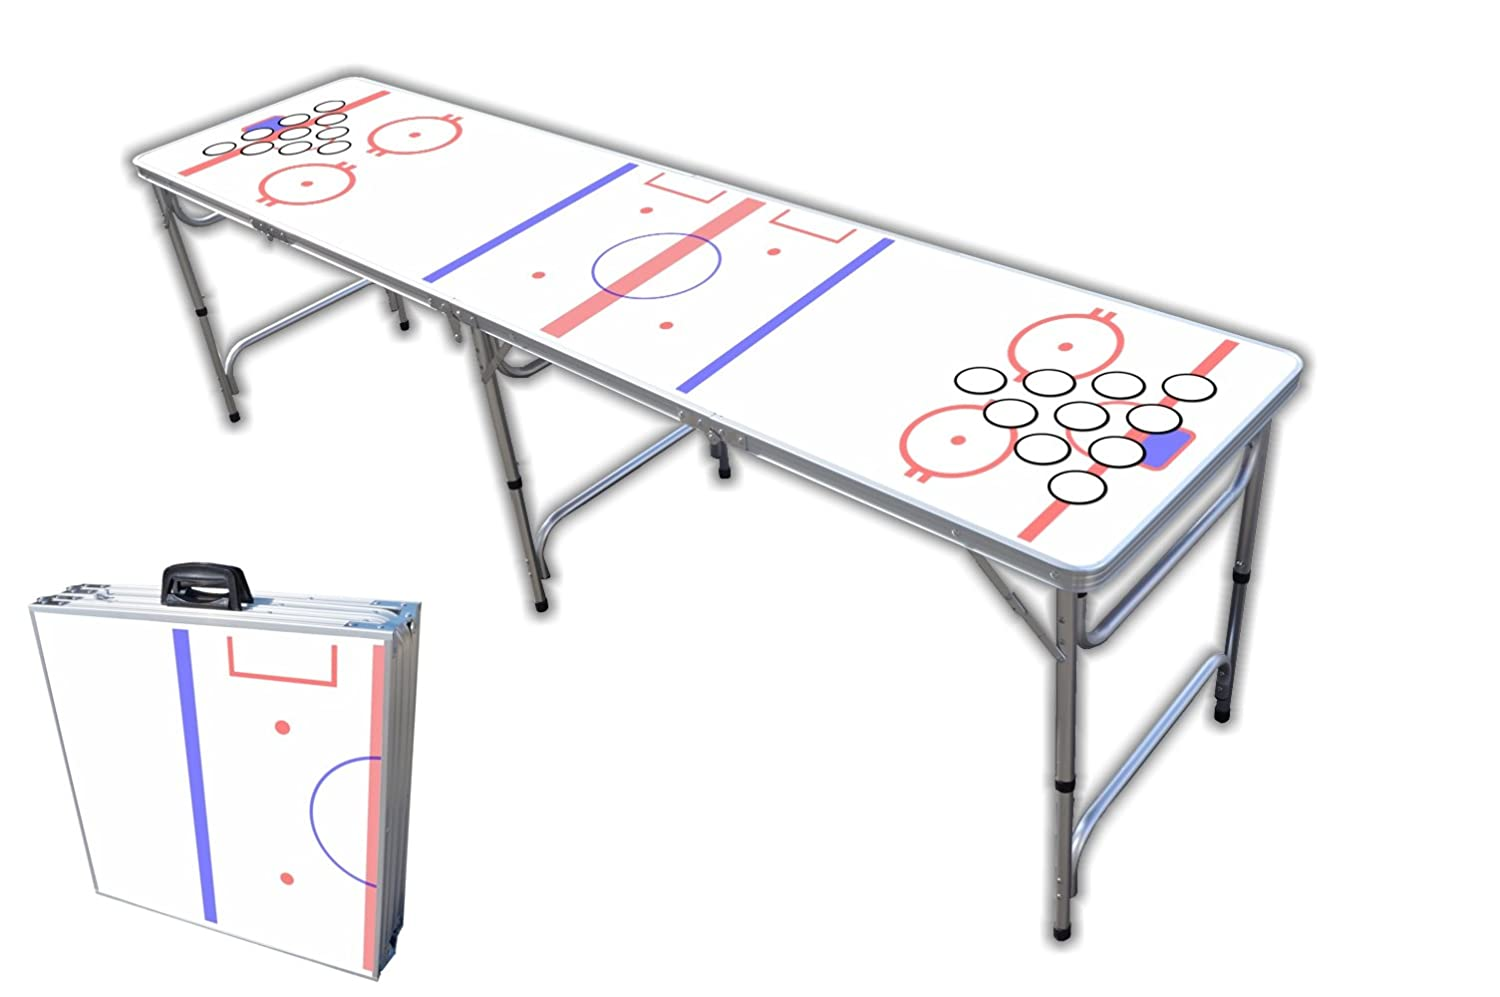 Hockey beer pong table - Amazon Com 8 Foot Professional Beer Pong Table W Cup Holes Hockey Rink Graphic Pong Games Sports Outdoors